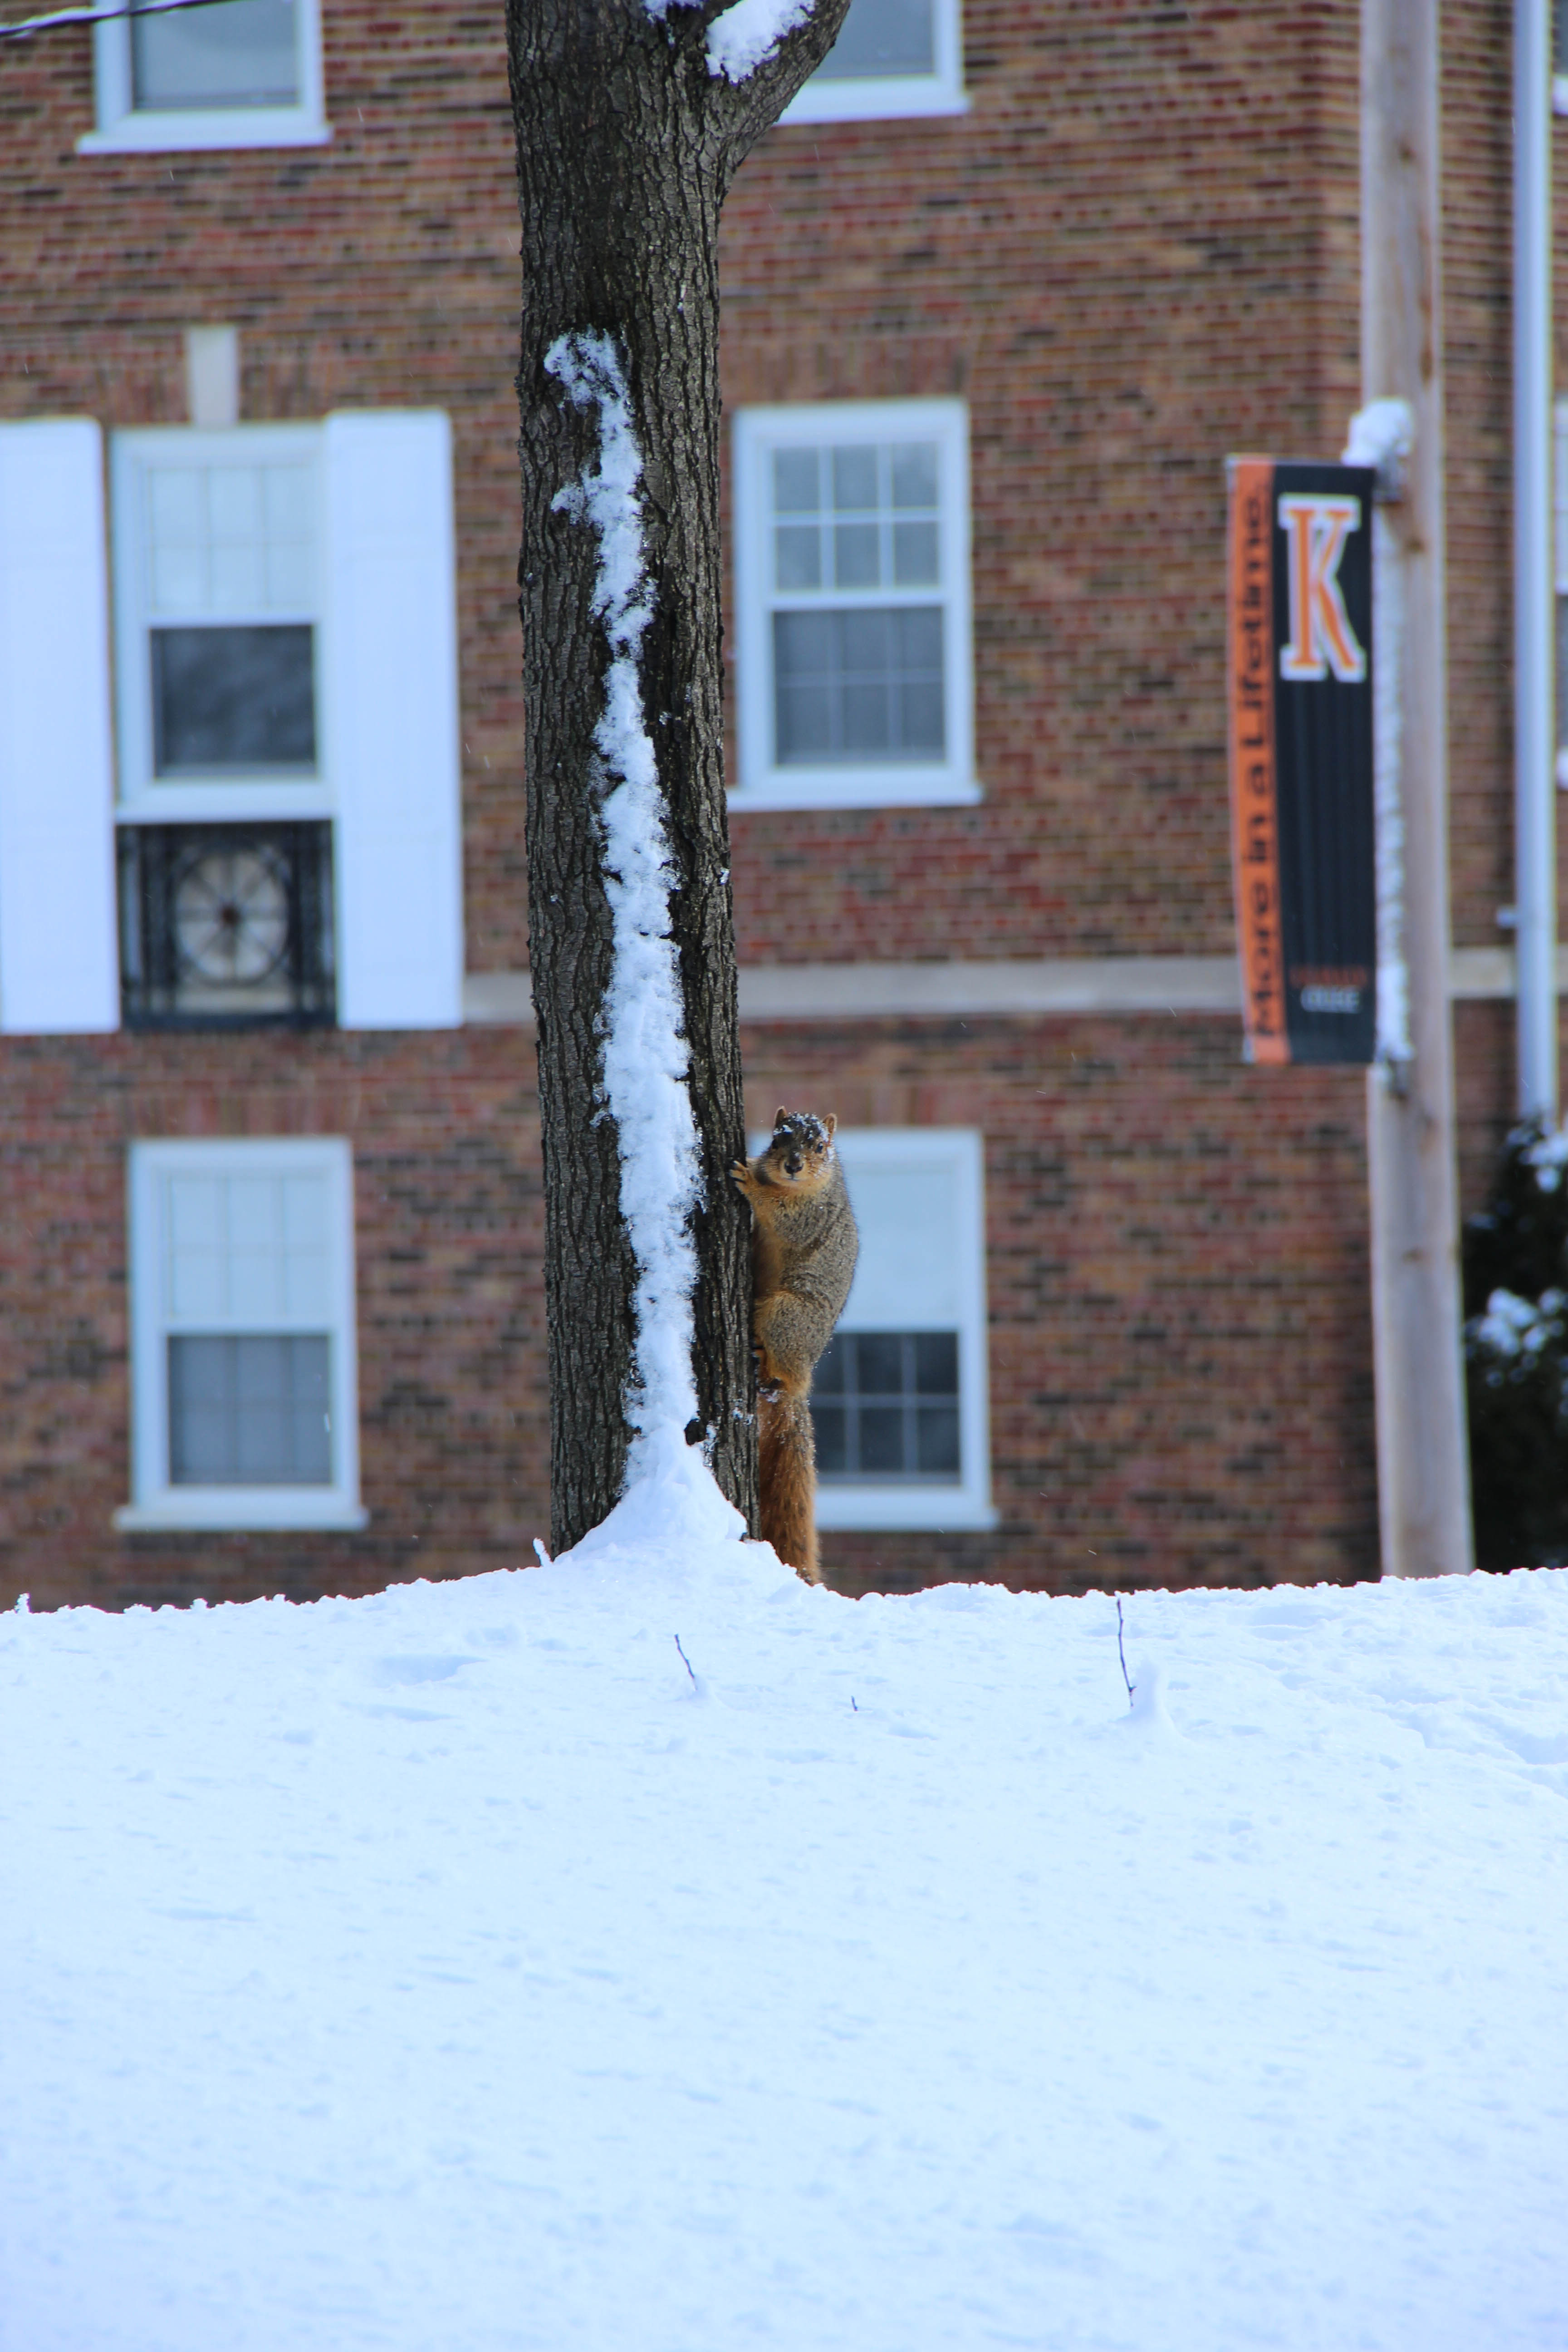 Squirrel on a snow-covered tree